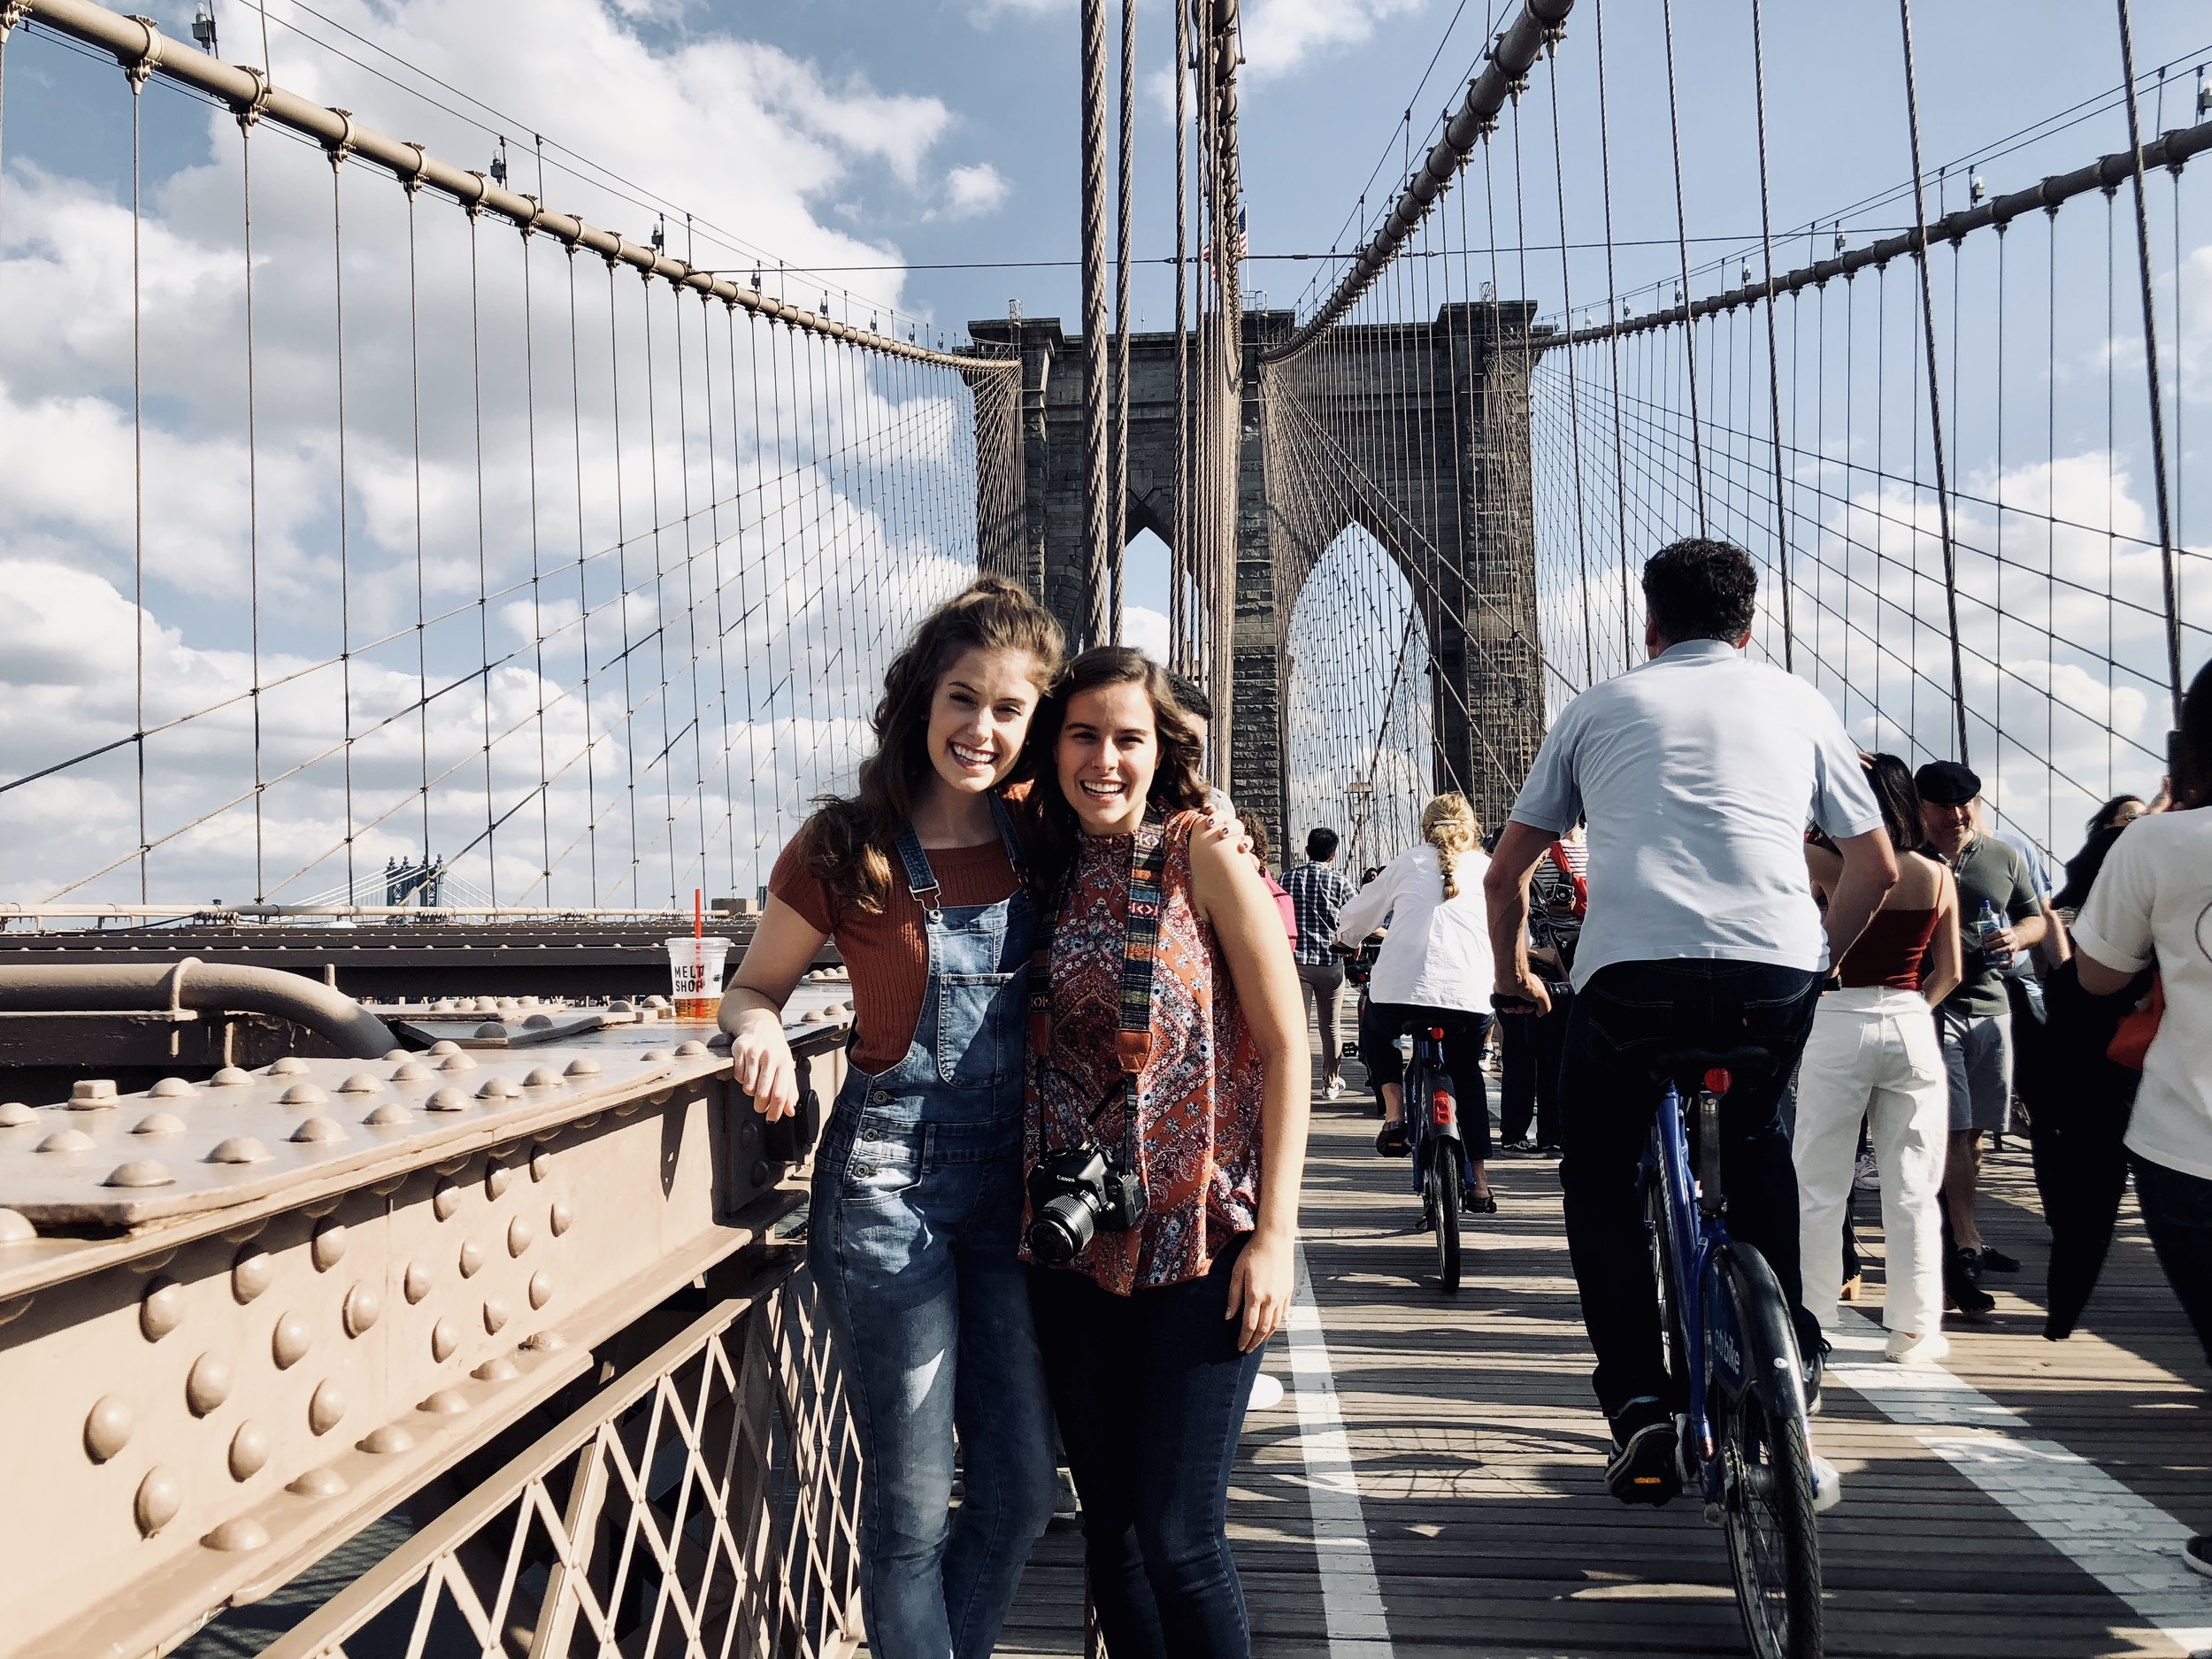 Photo taken by New Yorker, Edited by Samantha McHenry. Brooklyn Bridge, October 2018.